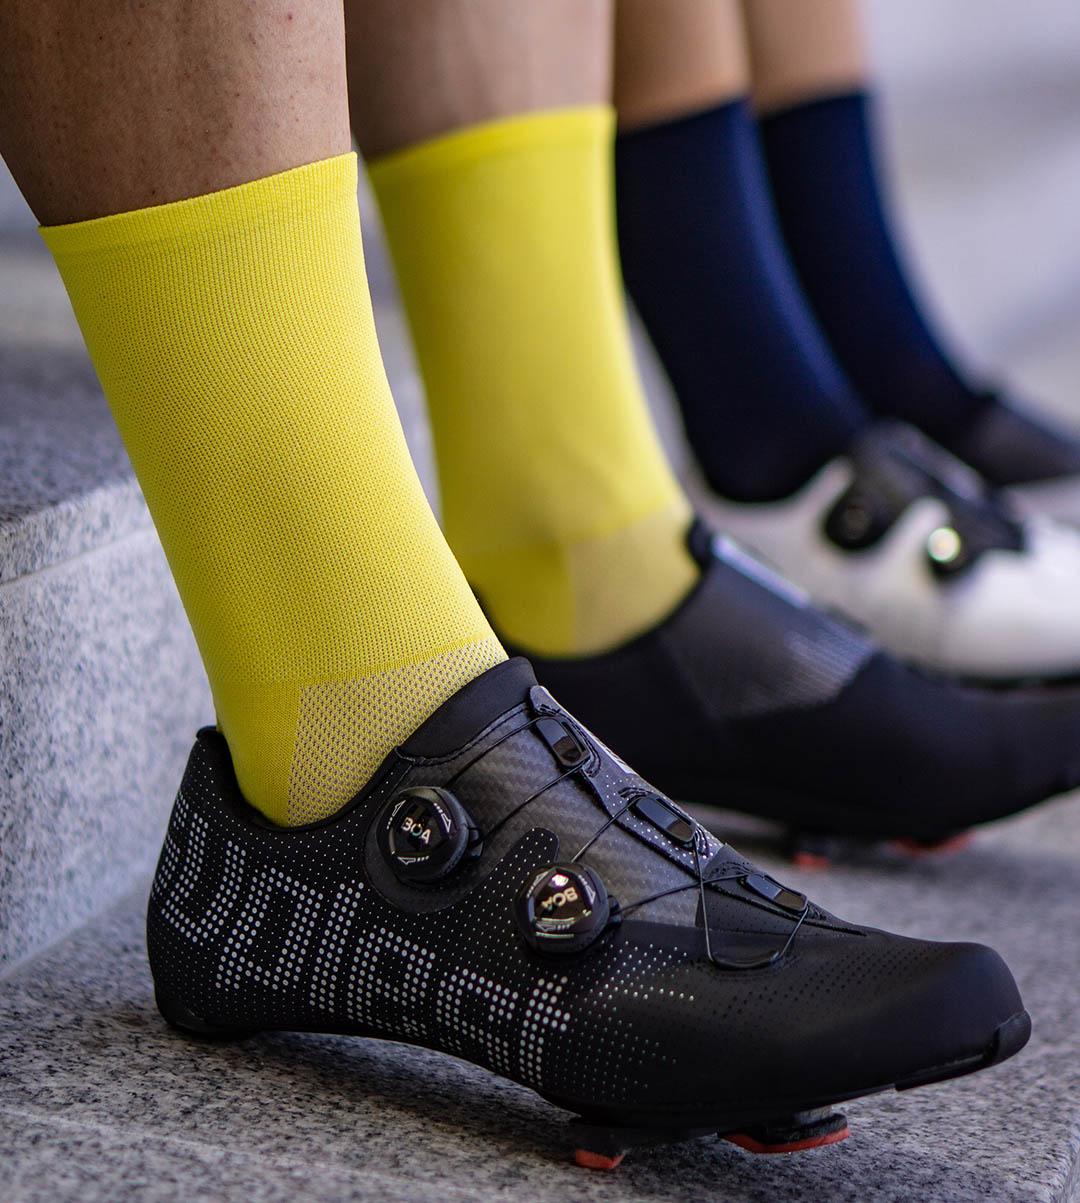 all yellow socks for road male and female cyclists. Made from eco-friendly yarns